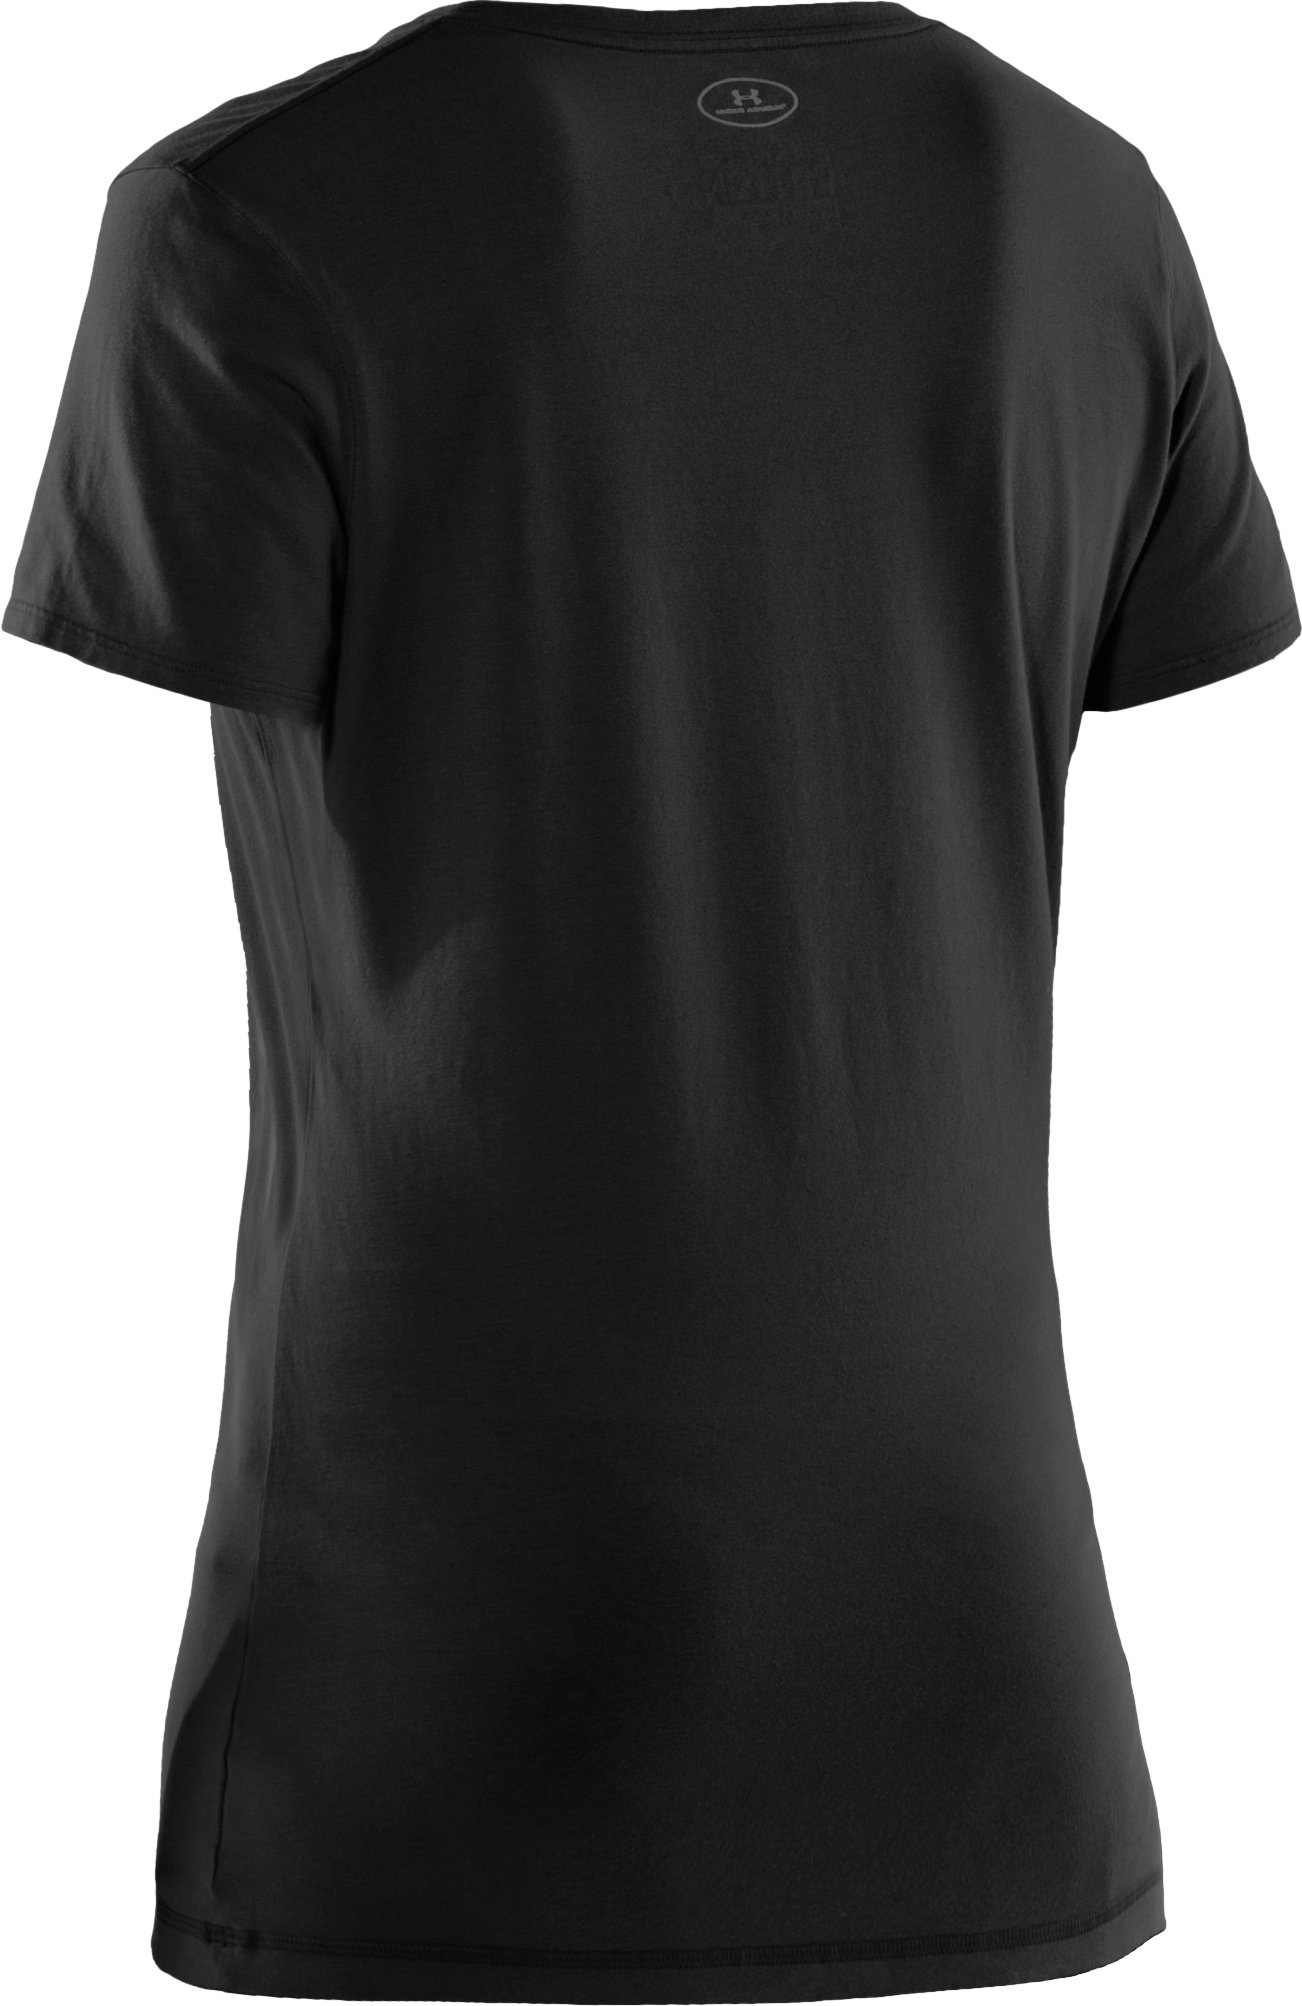 Women's Charged Cotton® Sassy Scoop T-Shirt, Black , undefined